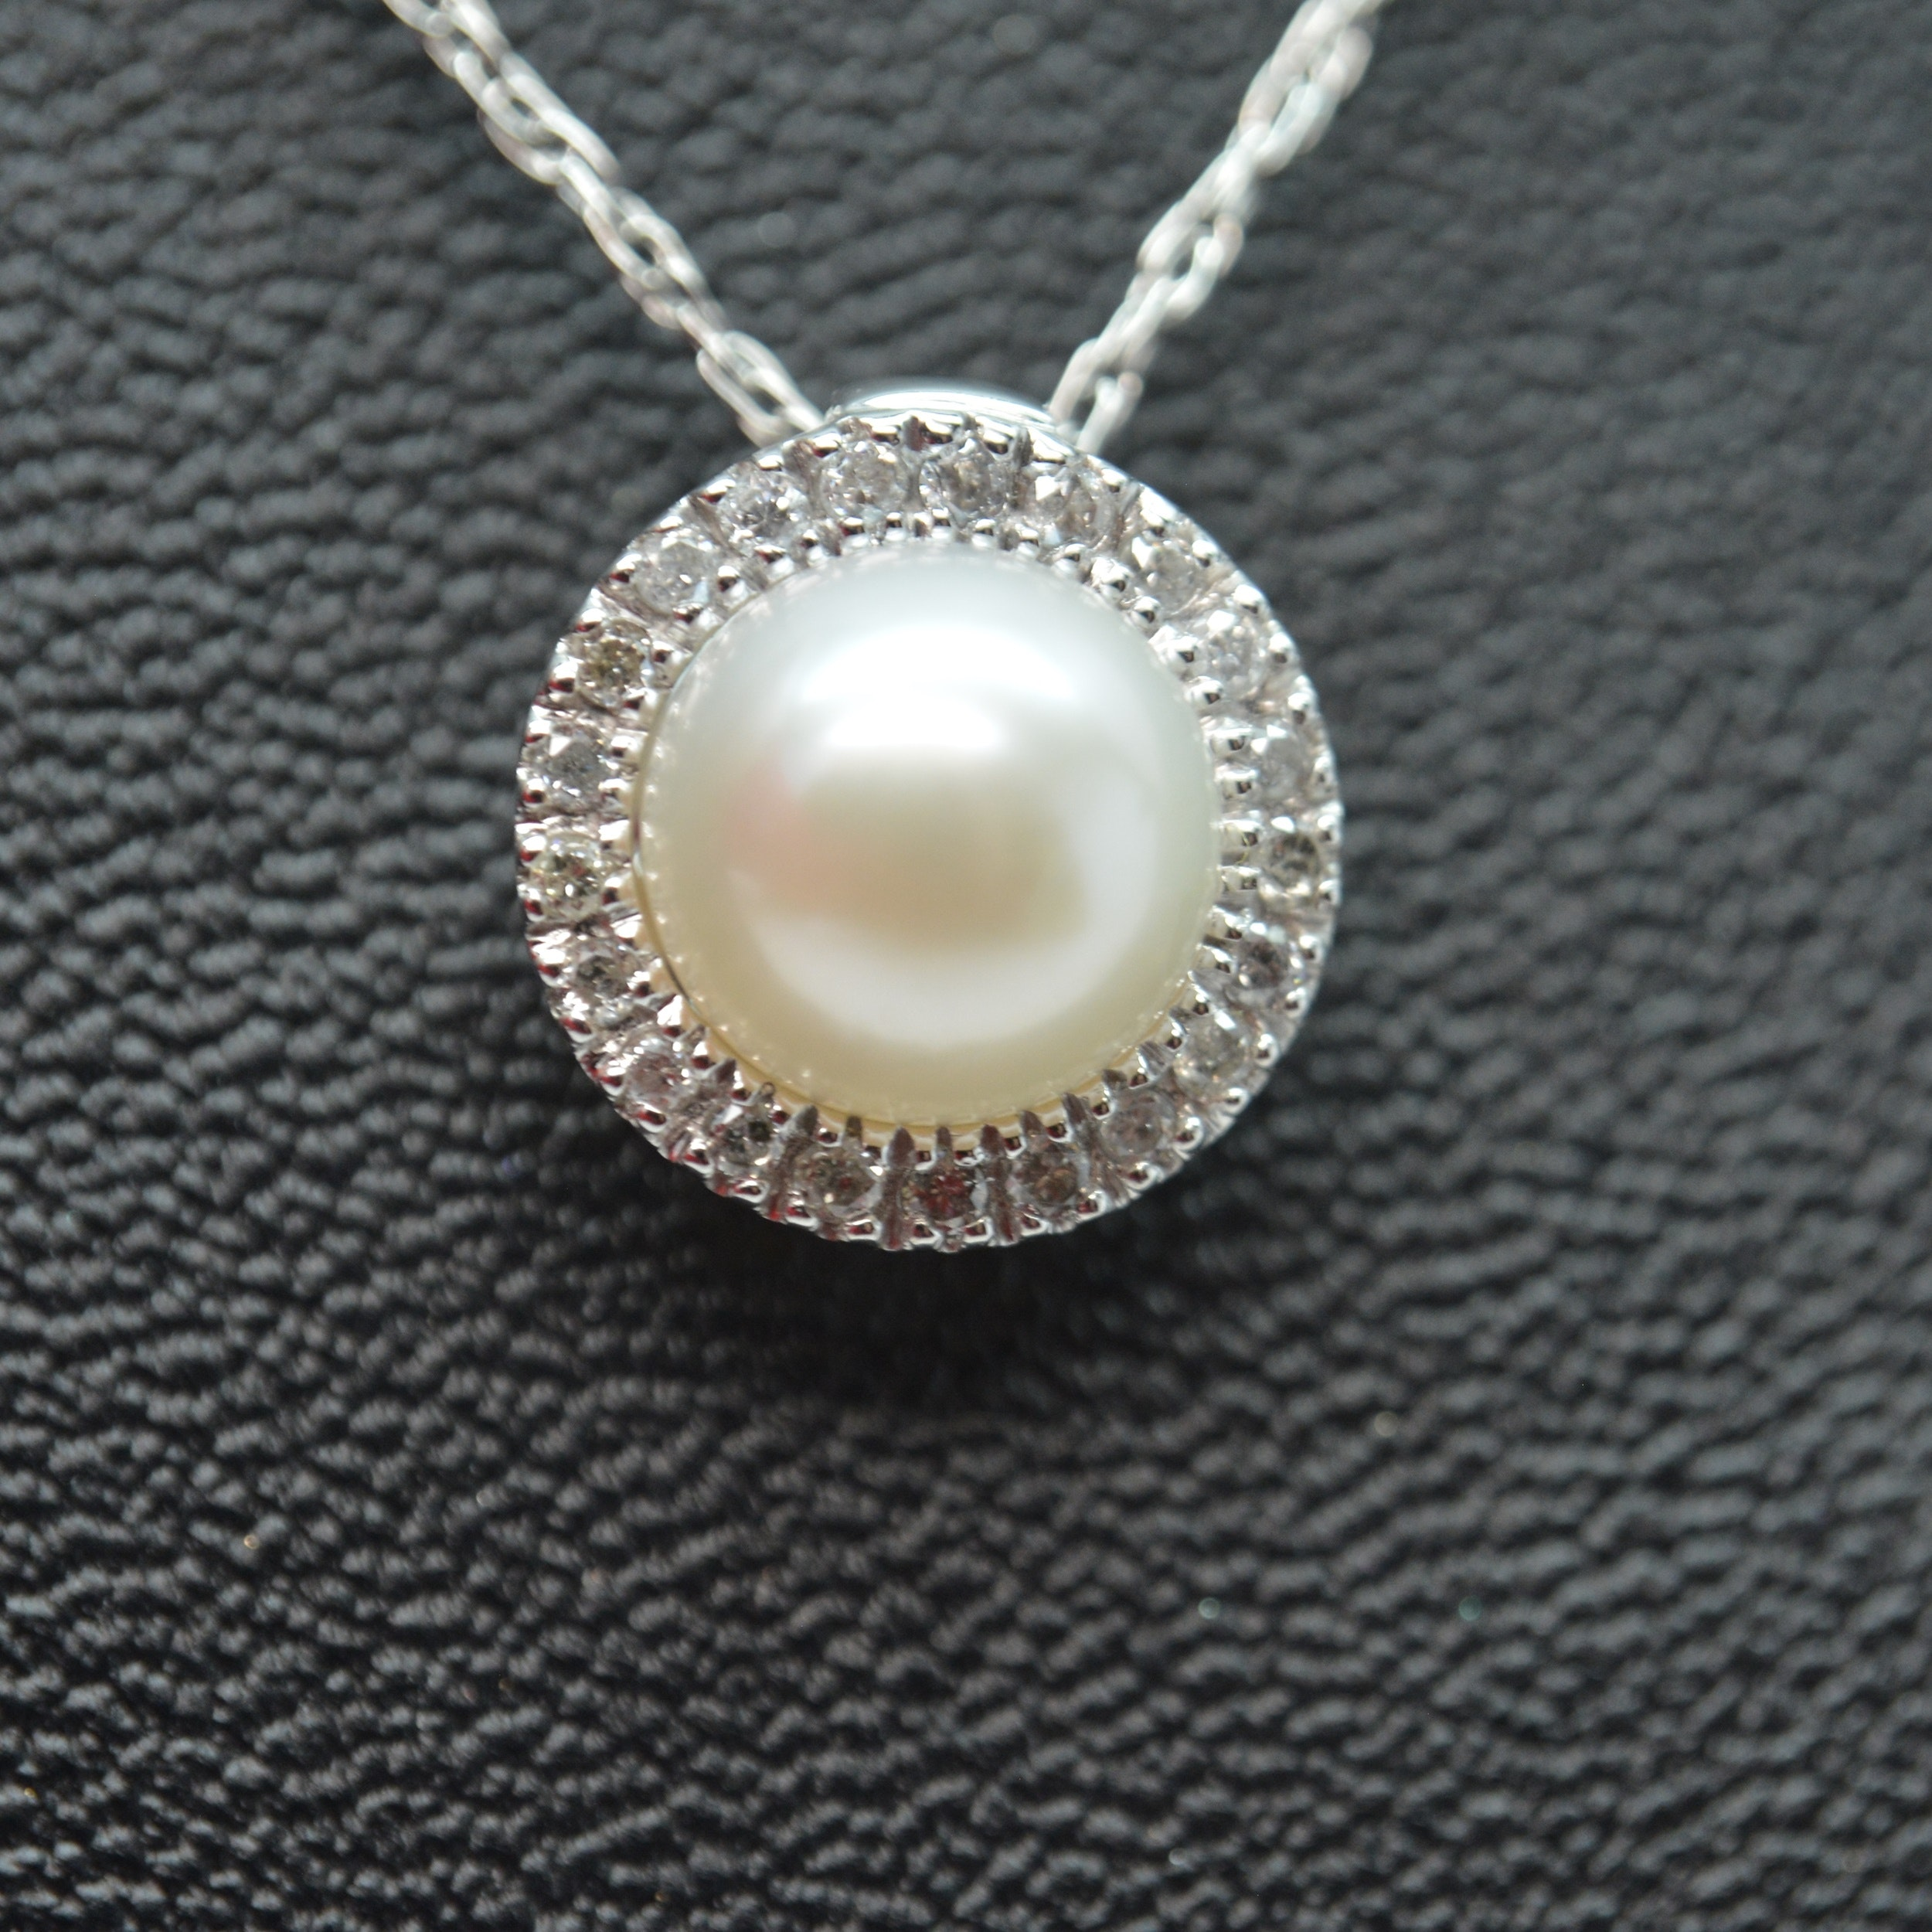 10K White Gold Cultured Pearl and Diamond Pendant Necklace